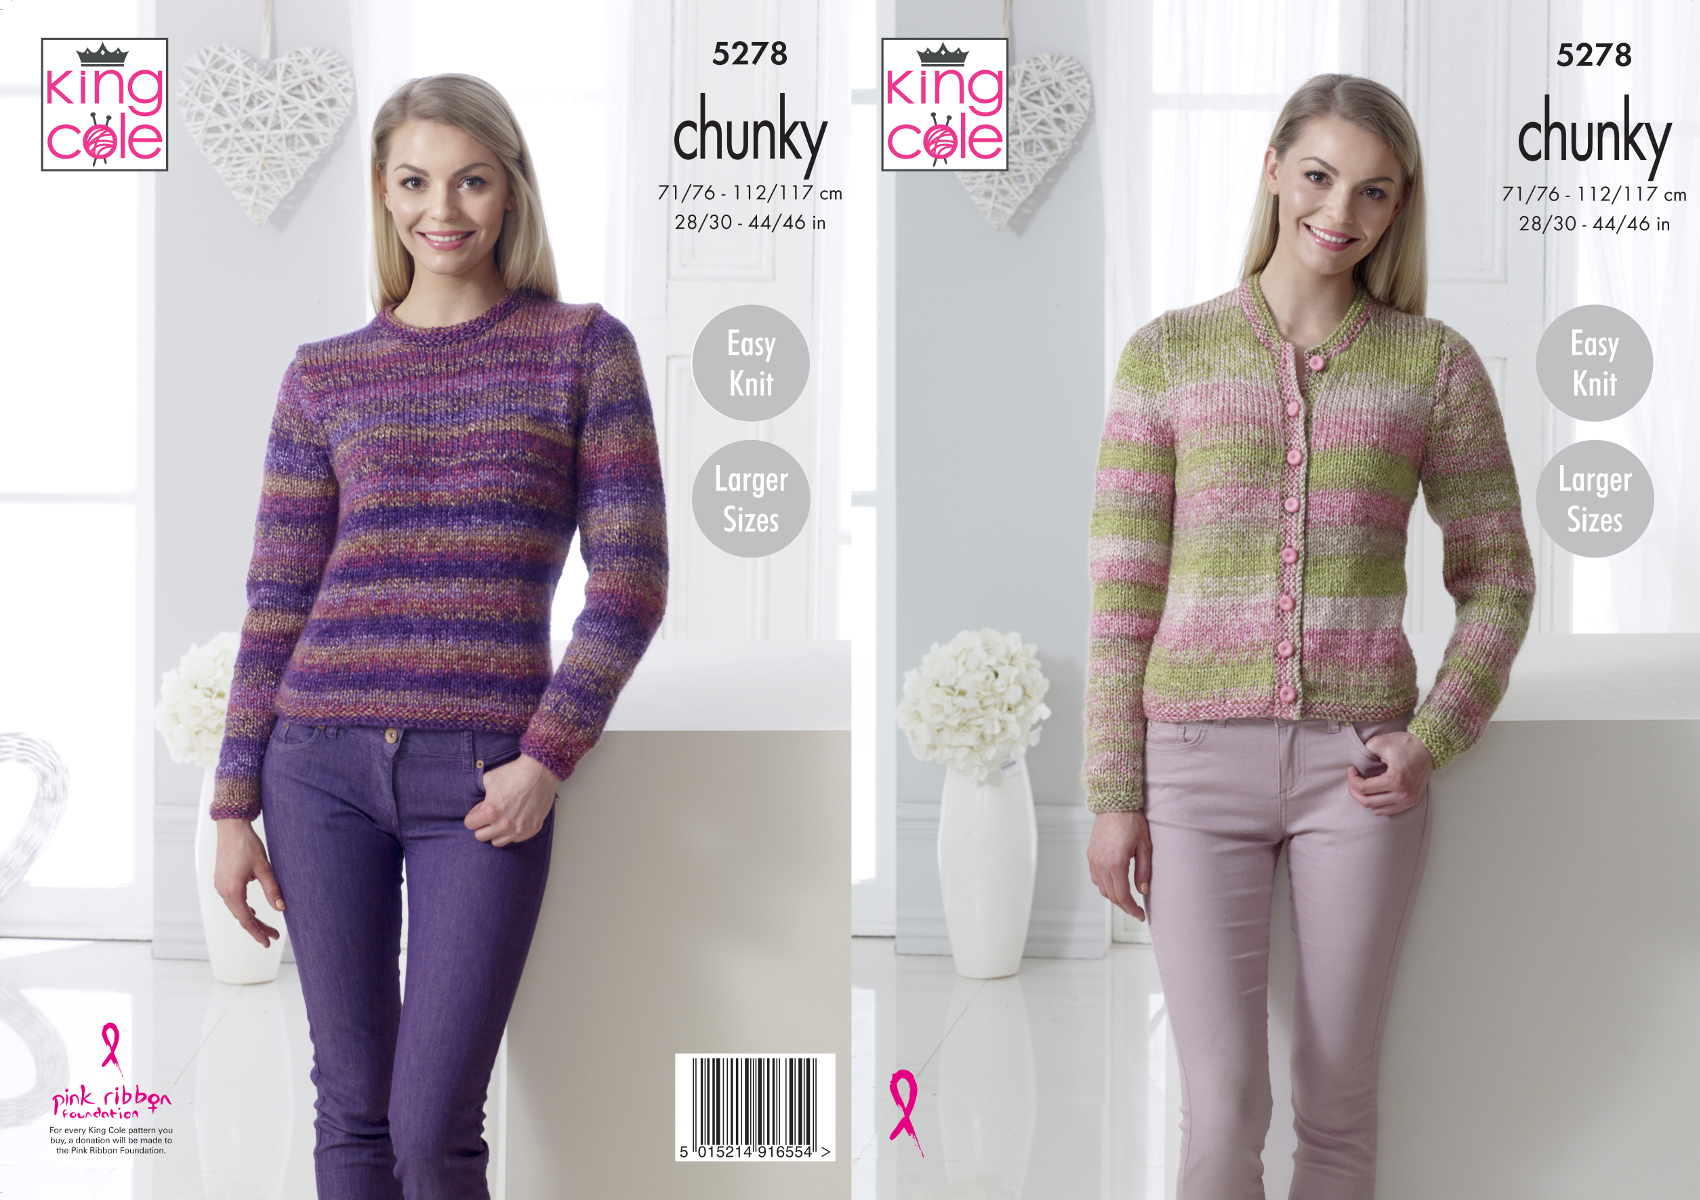 Easy Jumper Knitting Pattern Details About Easy Knit Womens Jumper Cardigan Ladies Chunky Knitting Pattern King Cole 5278